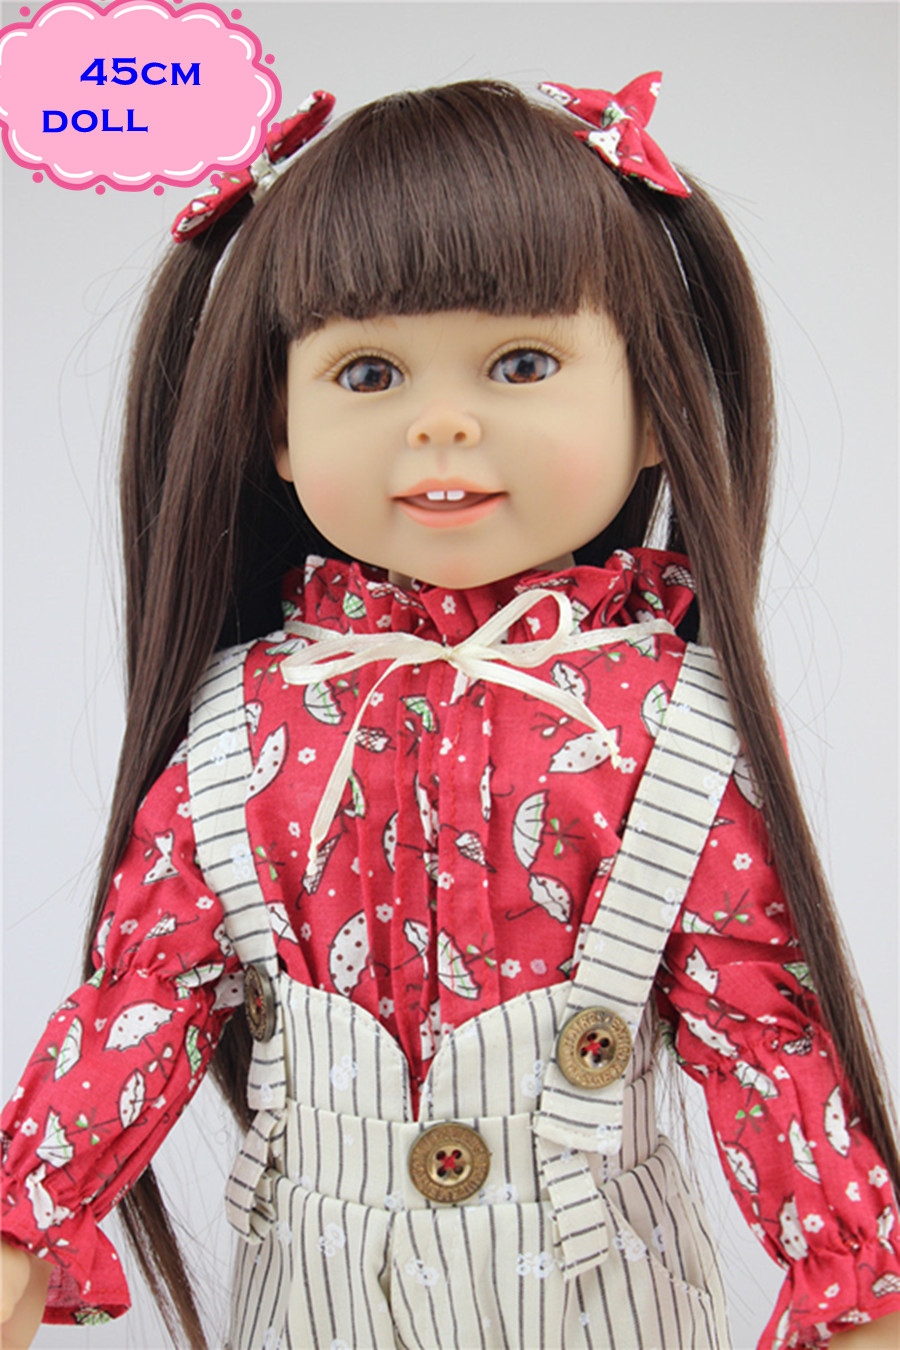 Hot Sale Full Vinyl Sweet NPK American Girl Doll With Soft 18inch Doll Clothes 45cm Boneca Reborn Realista Kids Toys For Child lifelike american 18 inches girl doll prices toy for children vinyl princess doll toys girl newest design